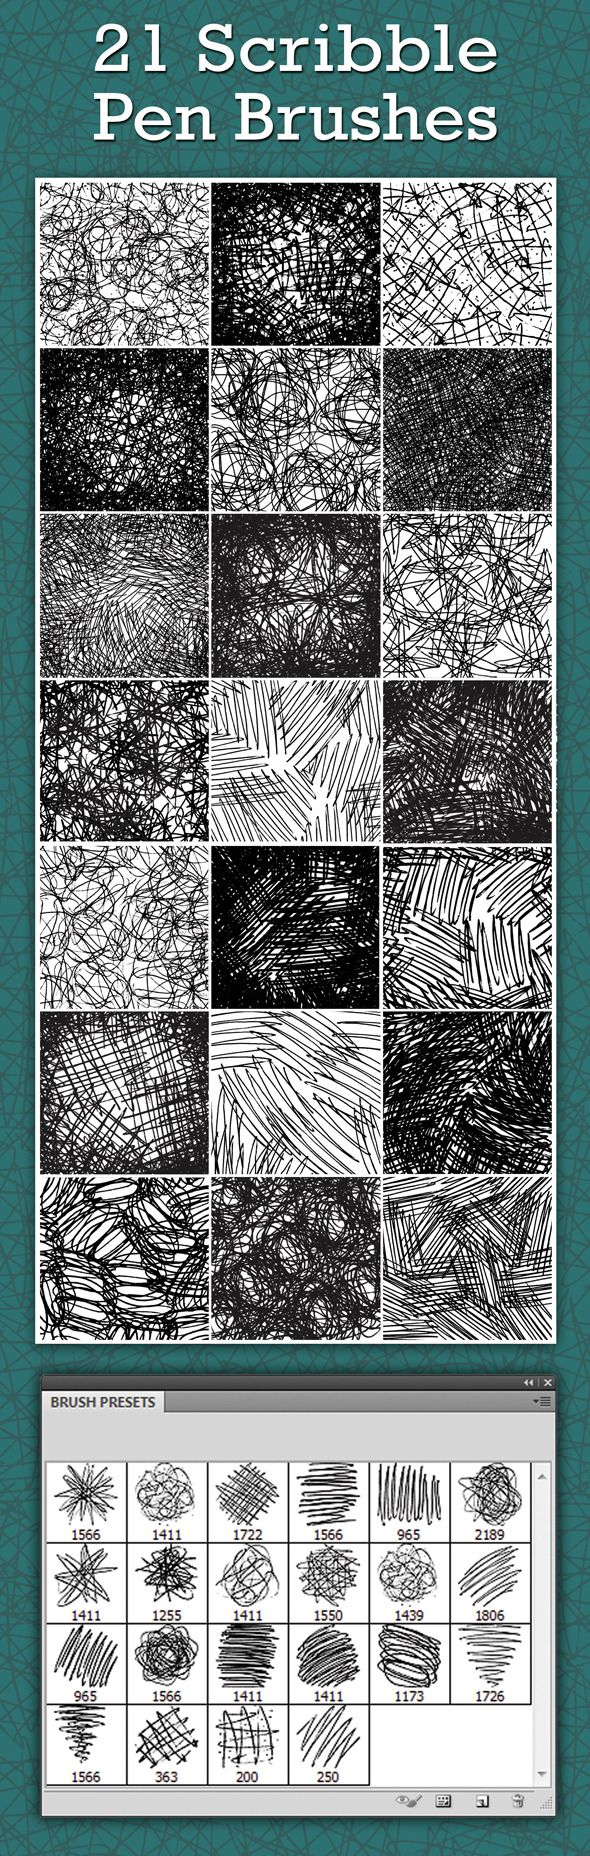 Scribble pen brushes photoshop brushes • download ➝